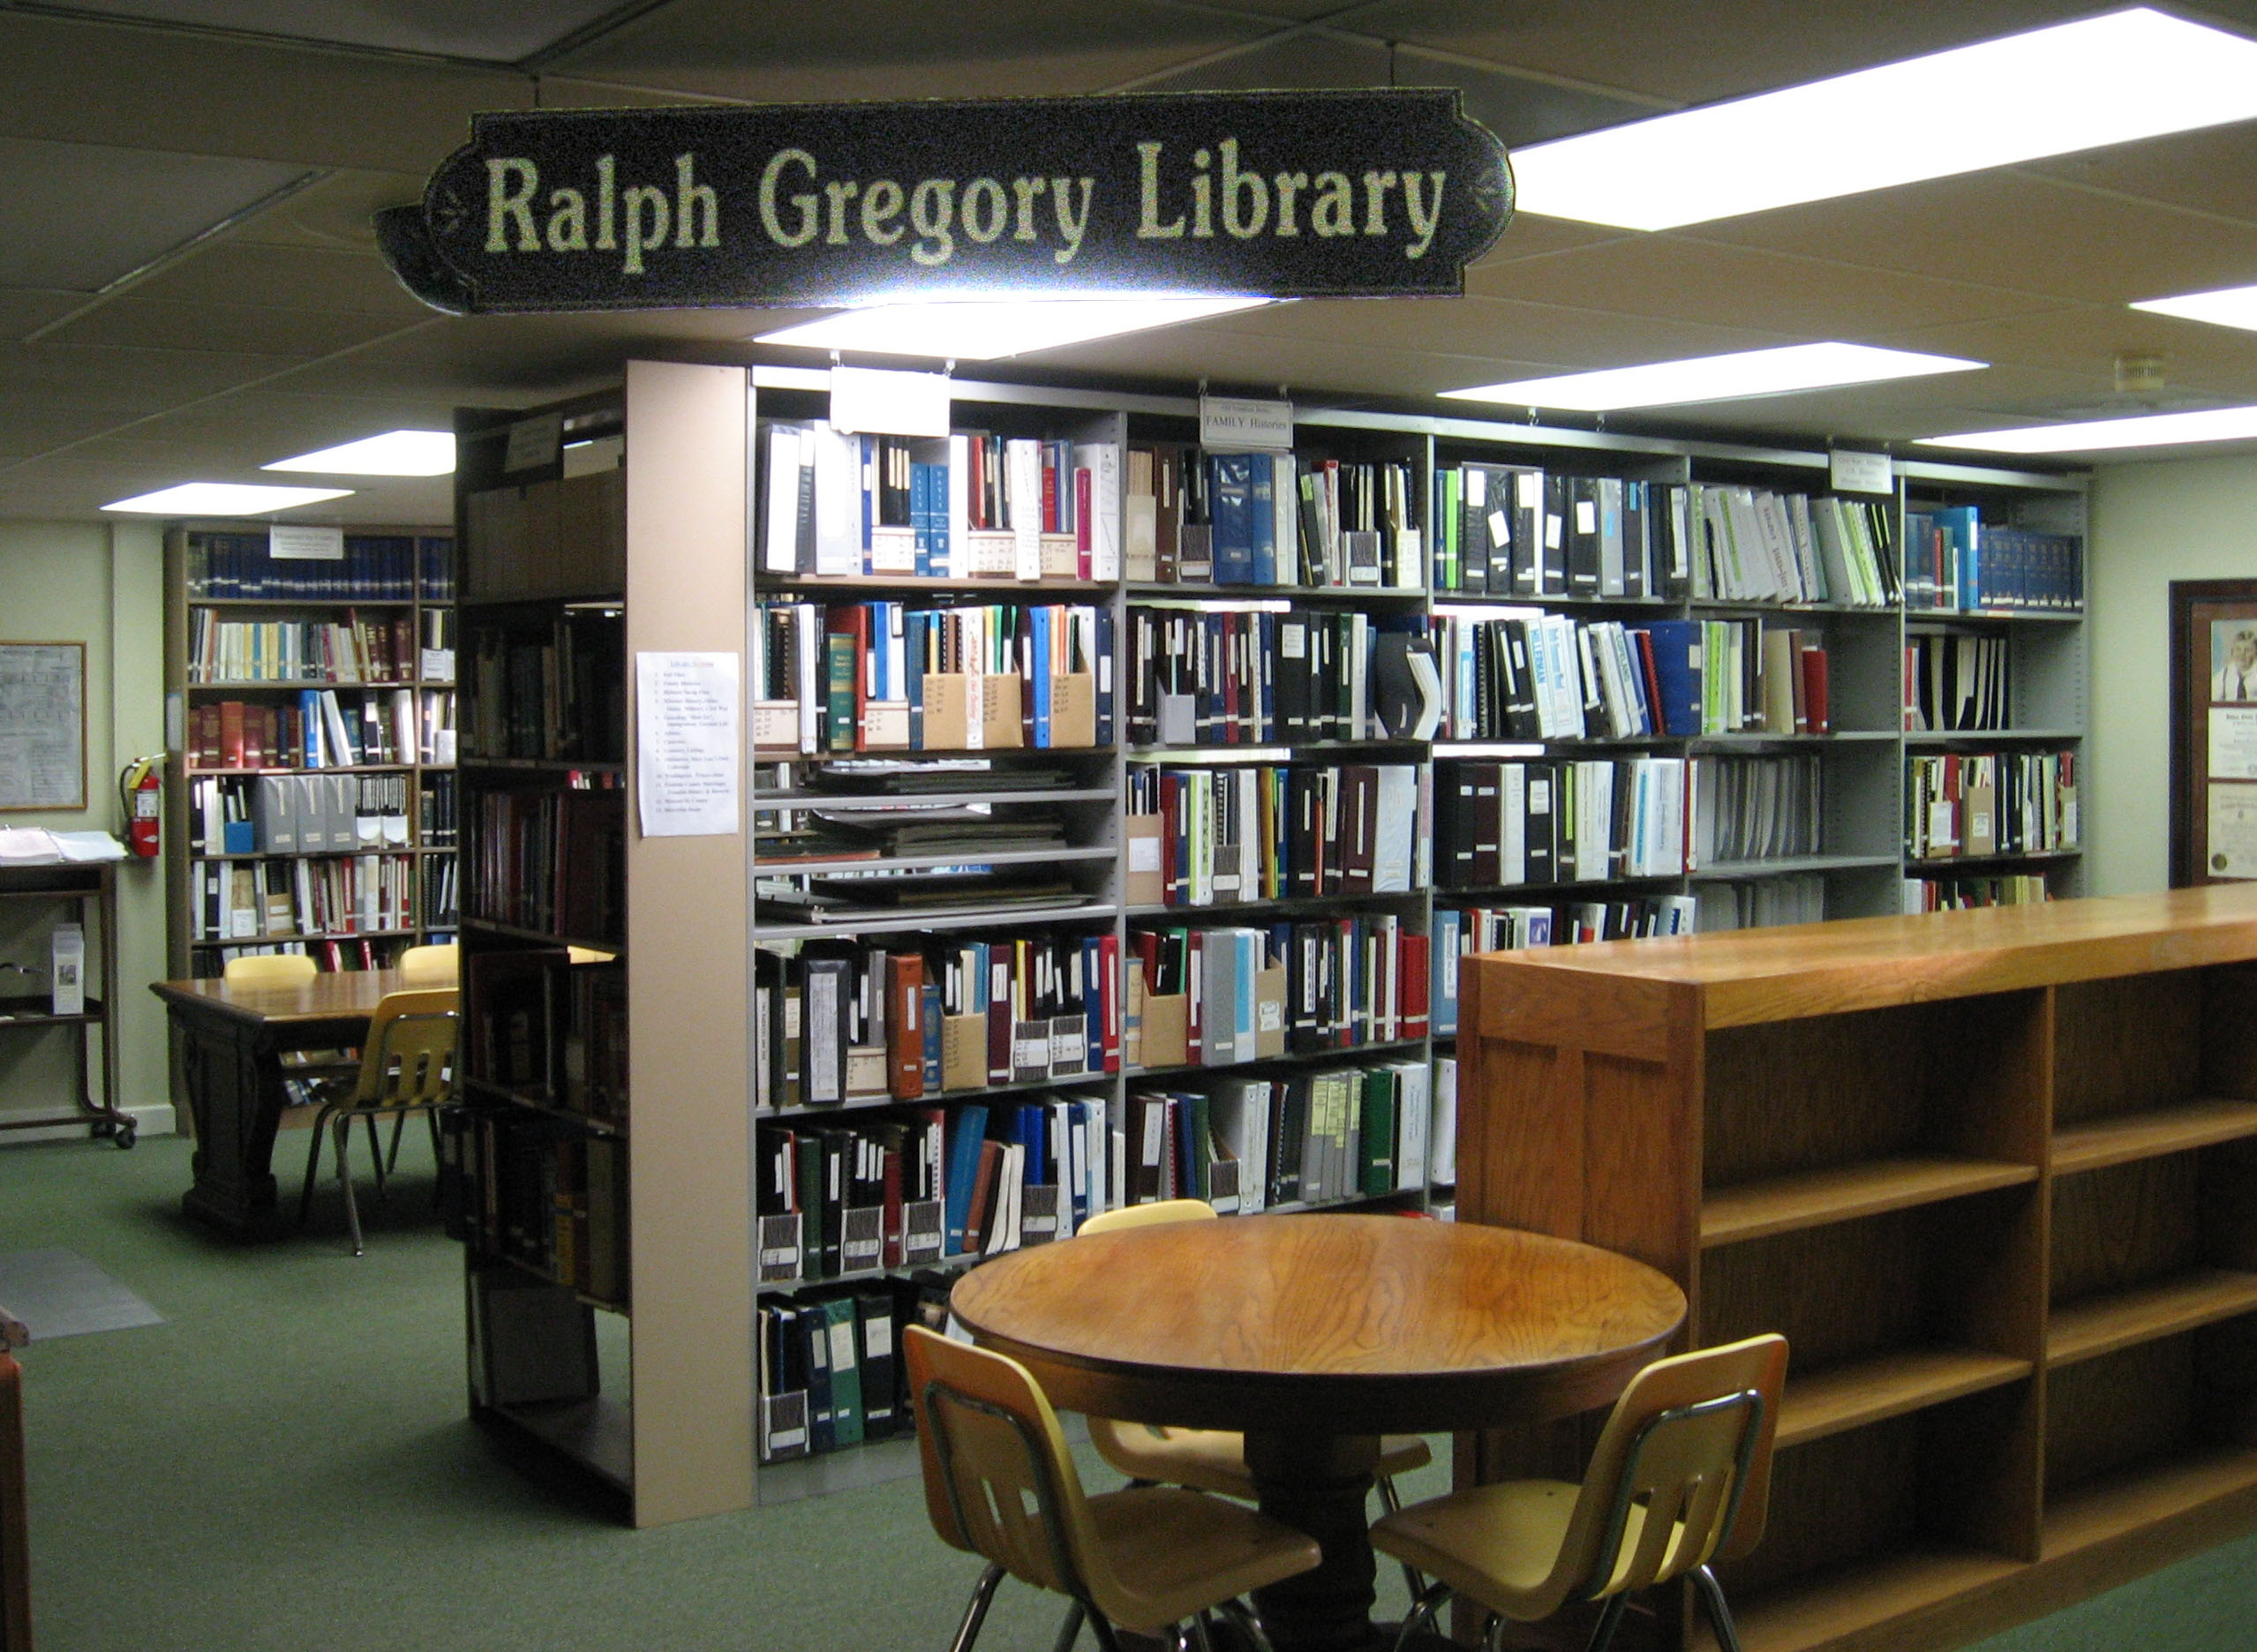 Ralph Gregory Library, located on first level of the museum, is the home of the Four Rivers Genealogical Society. It promotes genealogical research, assists members and others in researching and documenting family histories.